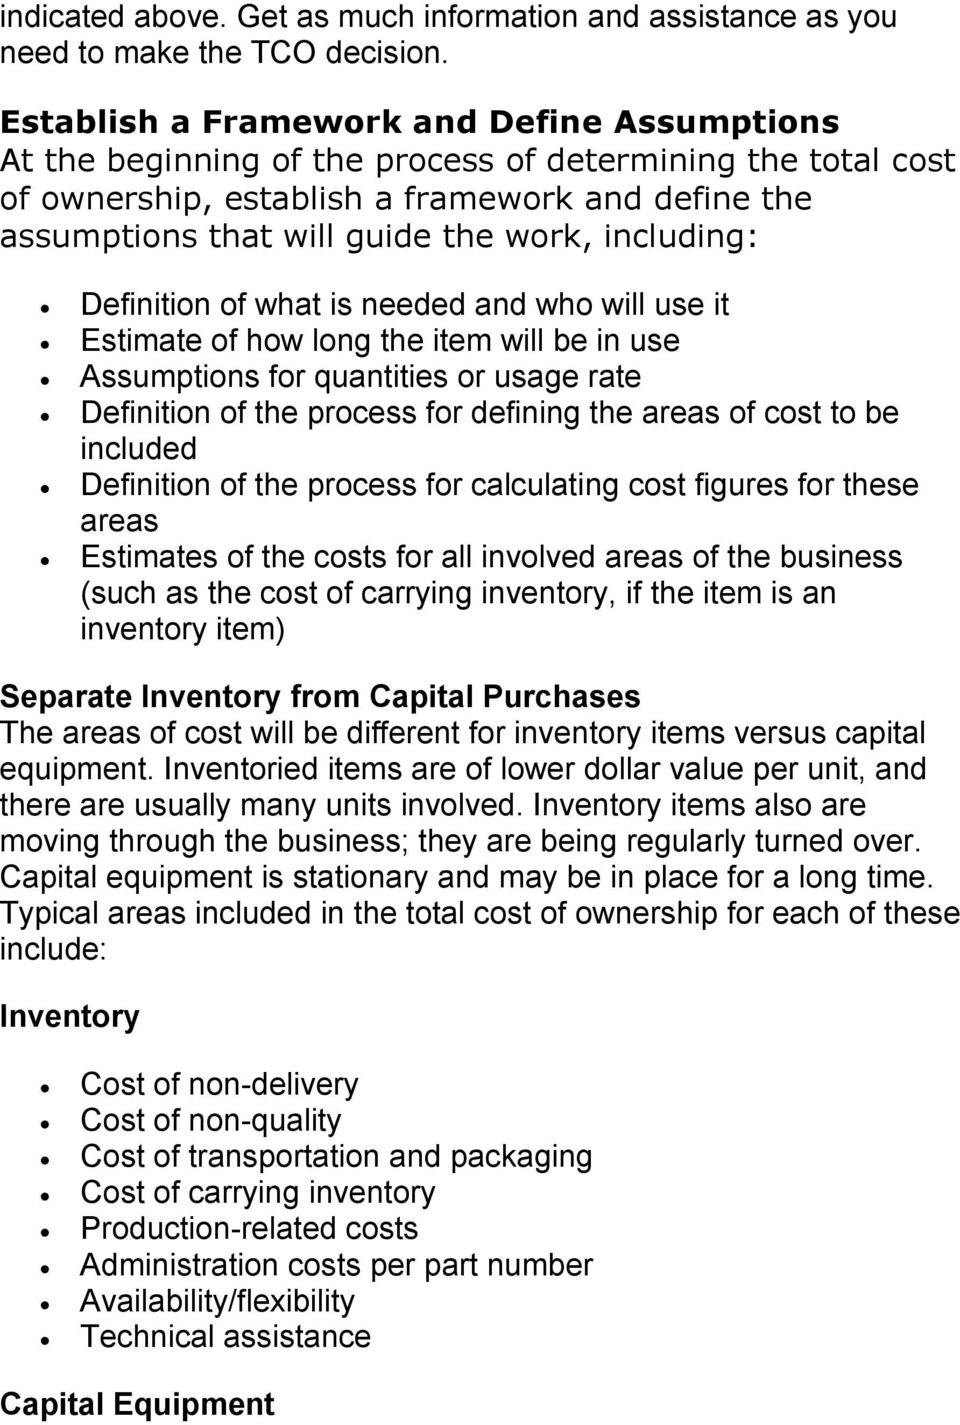 Total Cost Of Ownership  Pdf Inside The True Cost Of Ownership Worksheet Answers